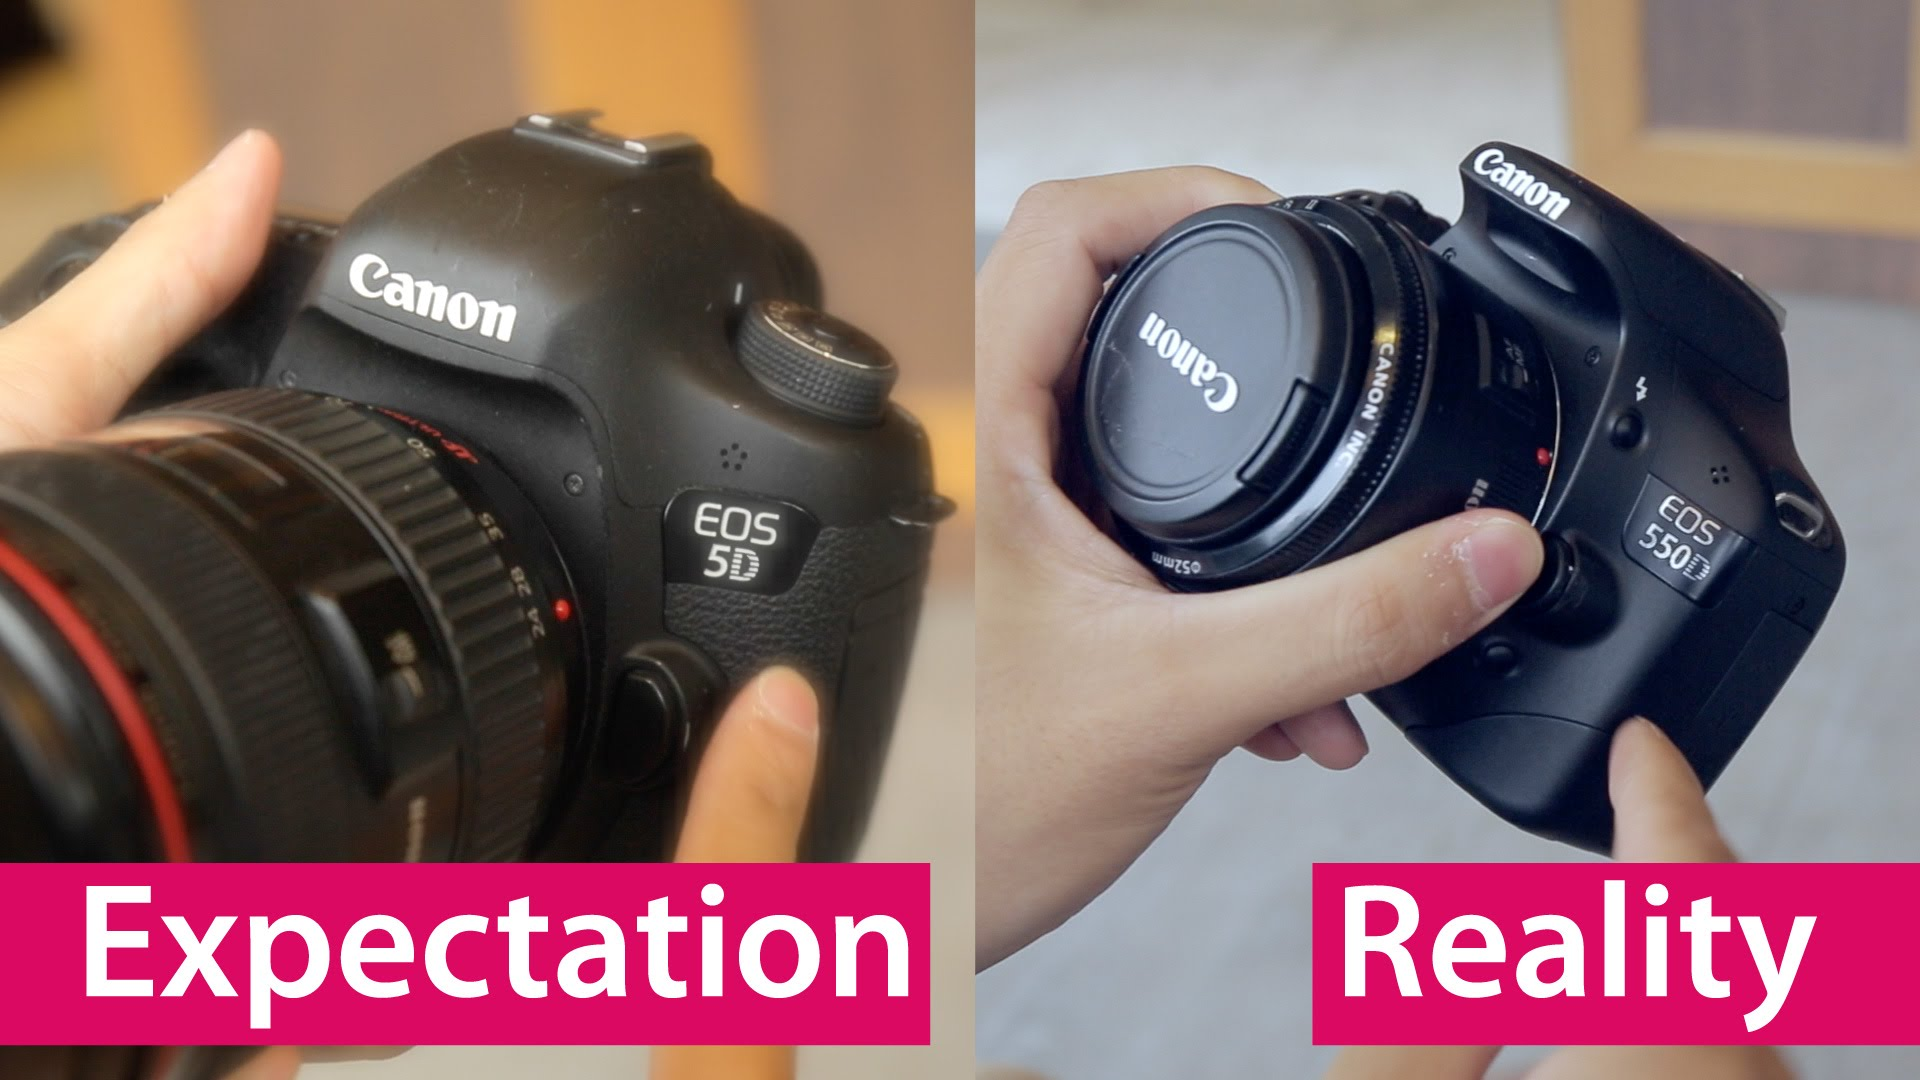 Must see- NOOB gets his first DSLR- Reality Check